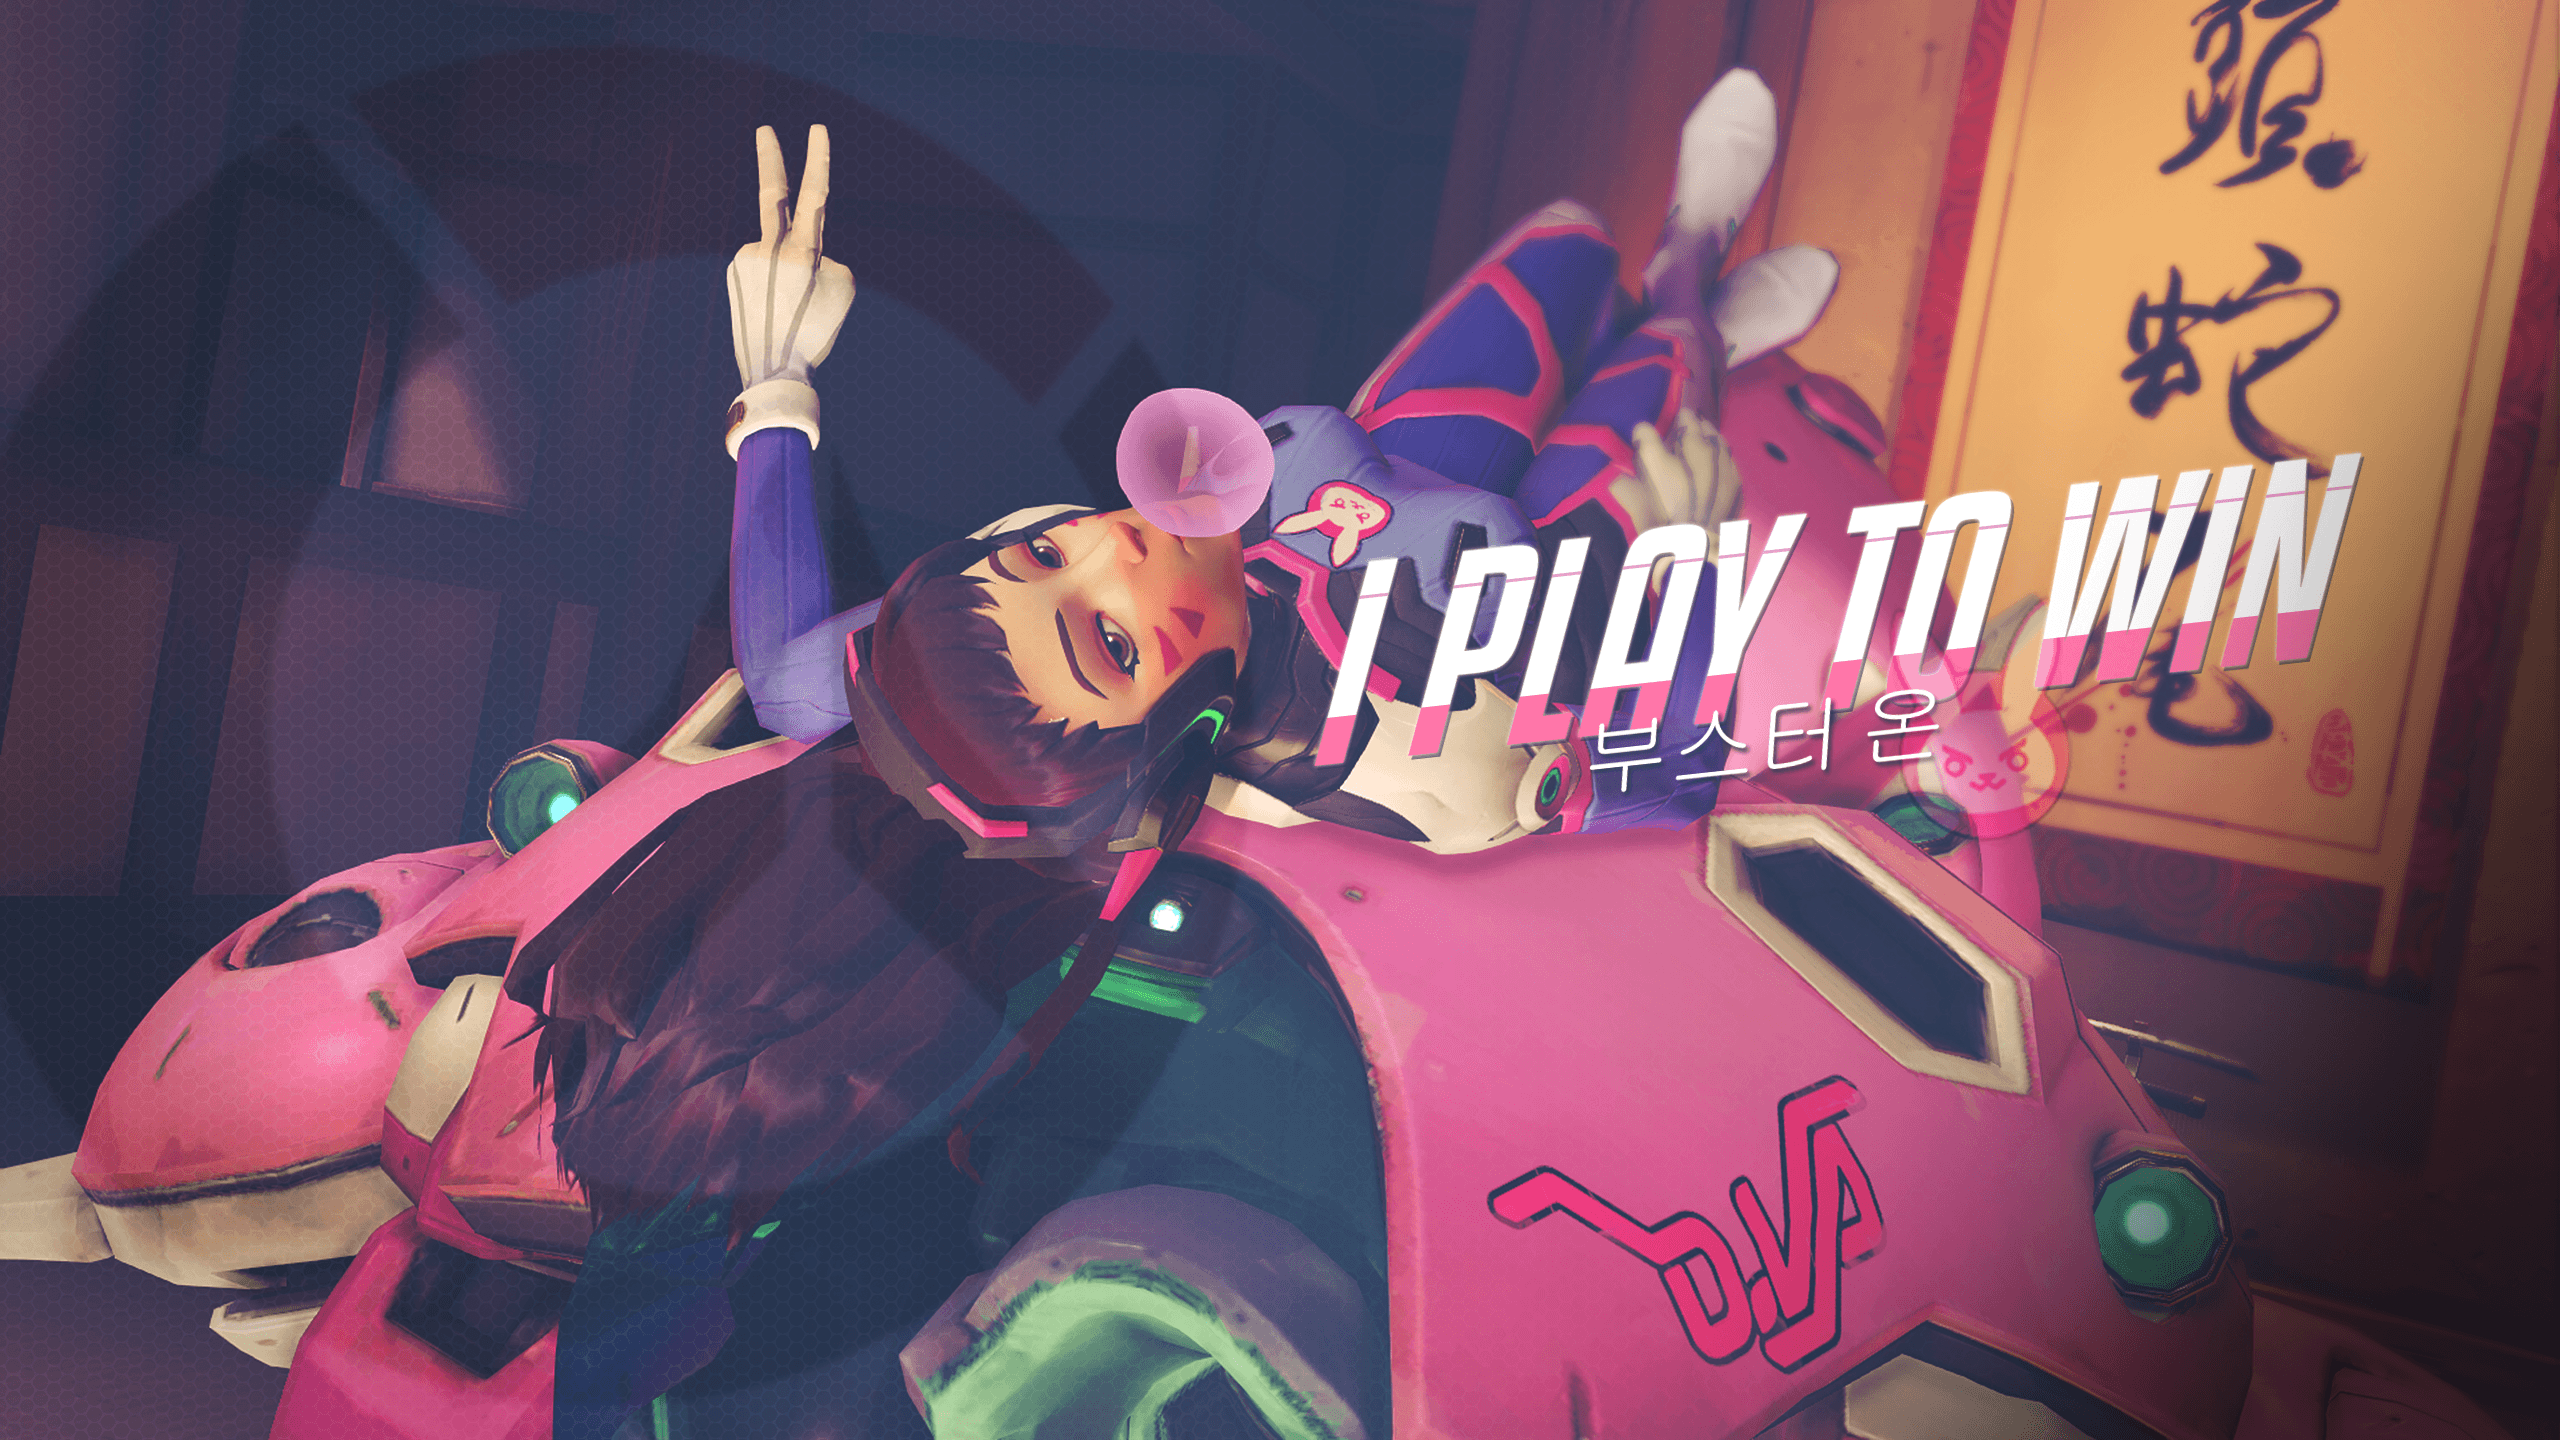 Overwatch Aesthetic Pc Wallpapers Wallpaper Cave